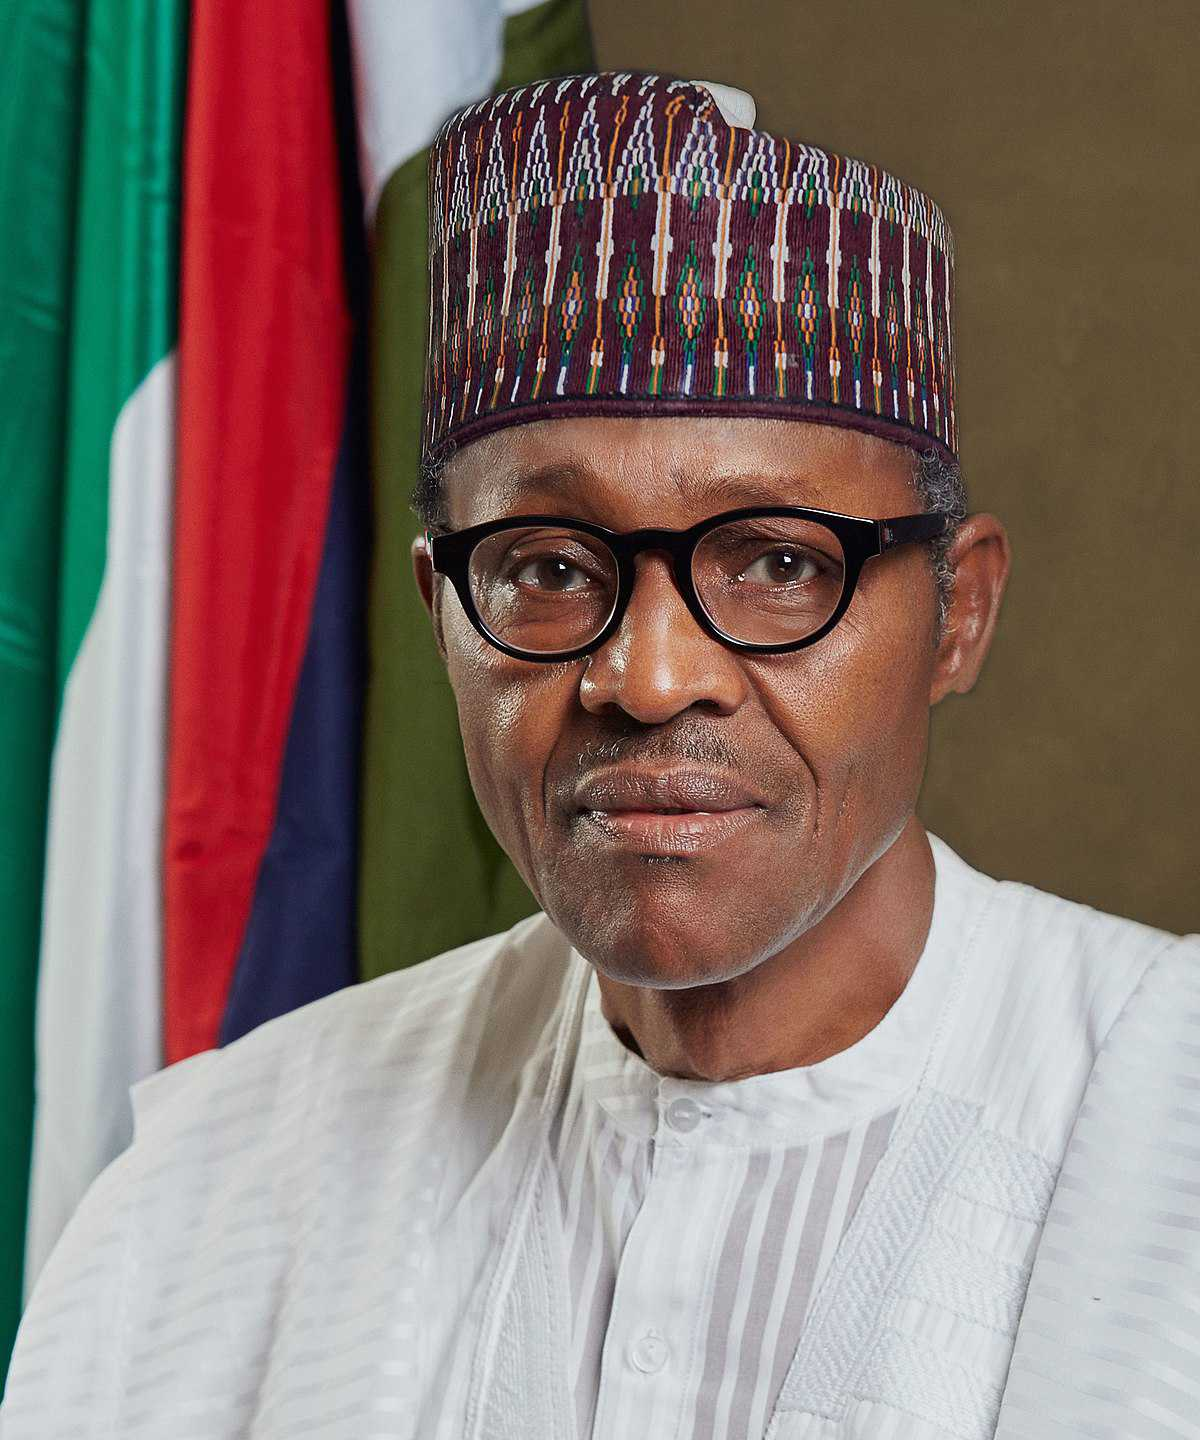 BREAKING: Buhari Reacts To Public Outcry, Promises 'Extensive Reform' Of Nigeria Police